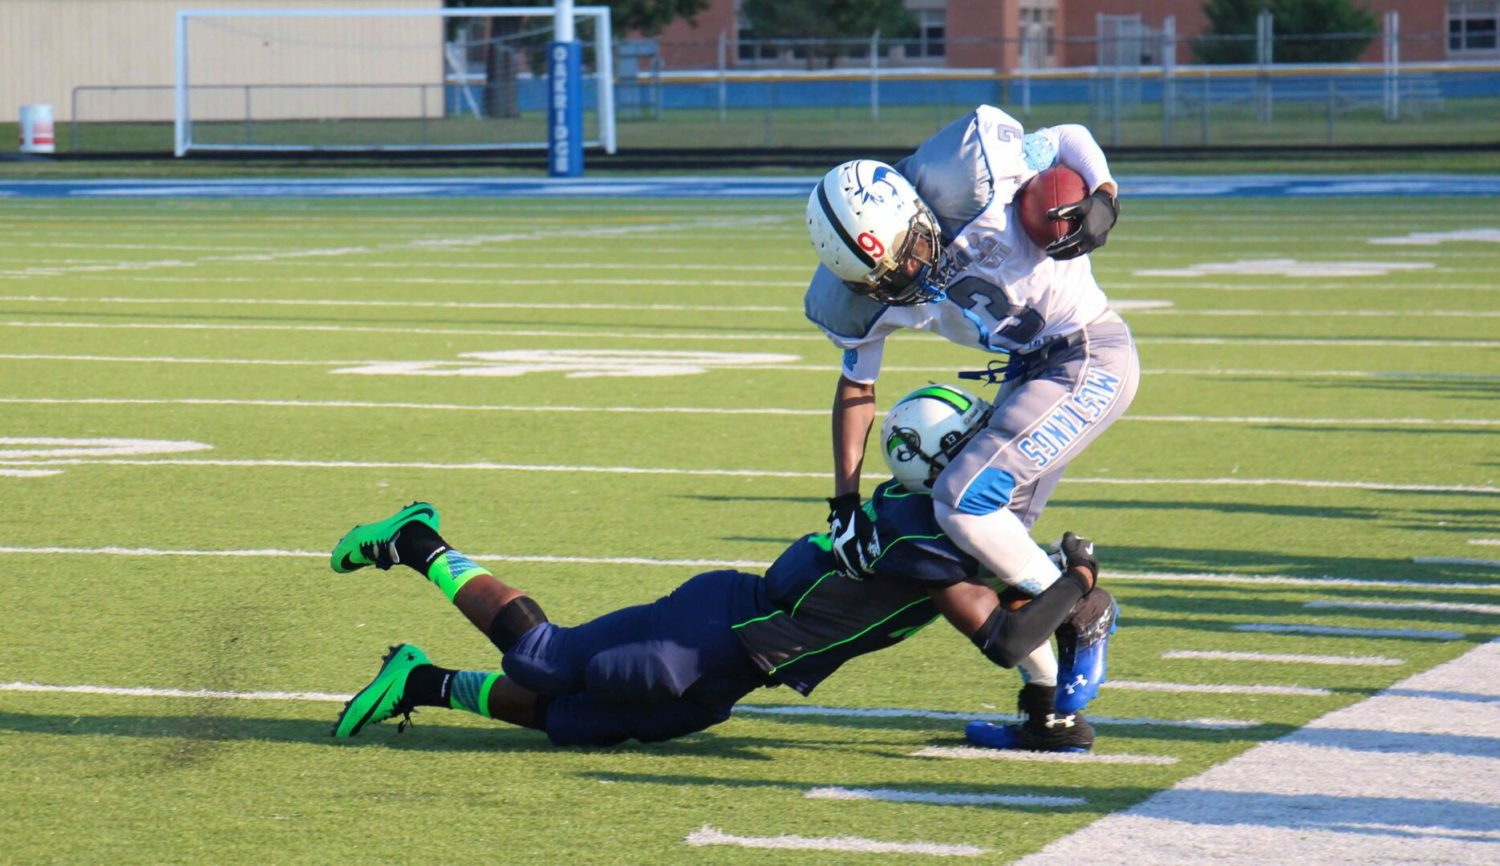 Muskegon Mustangs wrap up regular season with blowout victory, 56-6 over the Lakeshore Cougars [VIDEO]